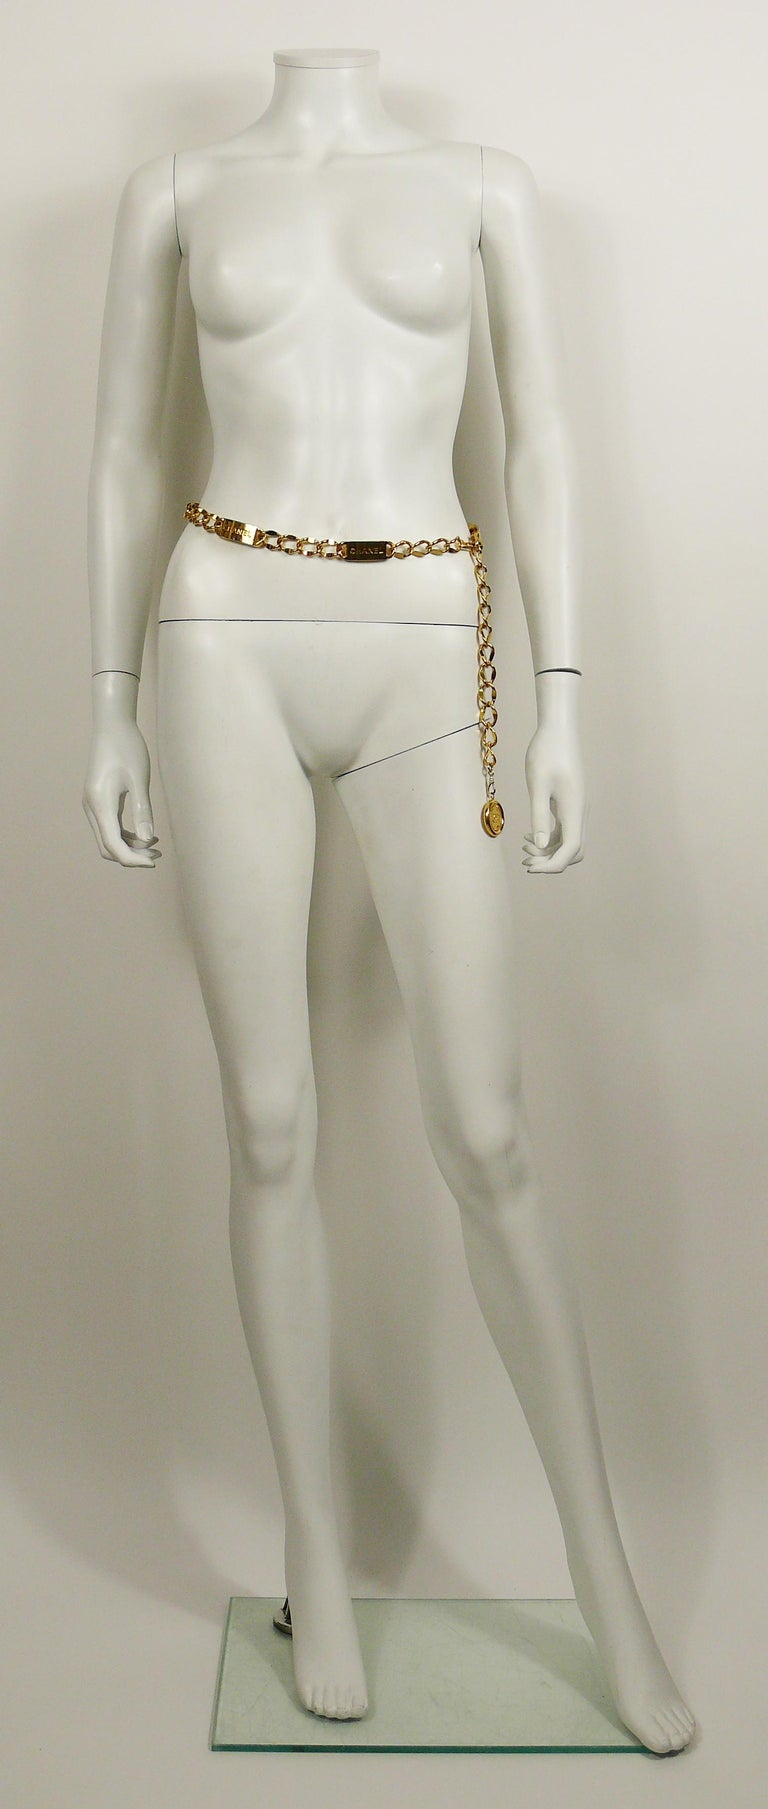 CHANEL vintage gold toned chunky chain belt featuring ID tag style plates embossed CHANEL and a 31 Rue Cambon CC circular coin.  Hook closure.  Adjustable length.  This belt can also easily be worn as a necklace.  Embossed CHANEL on the